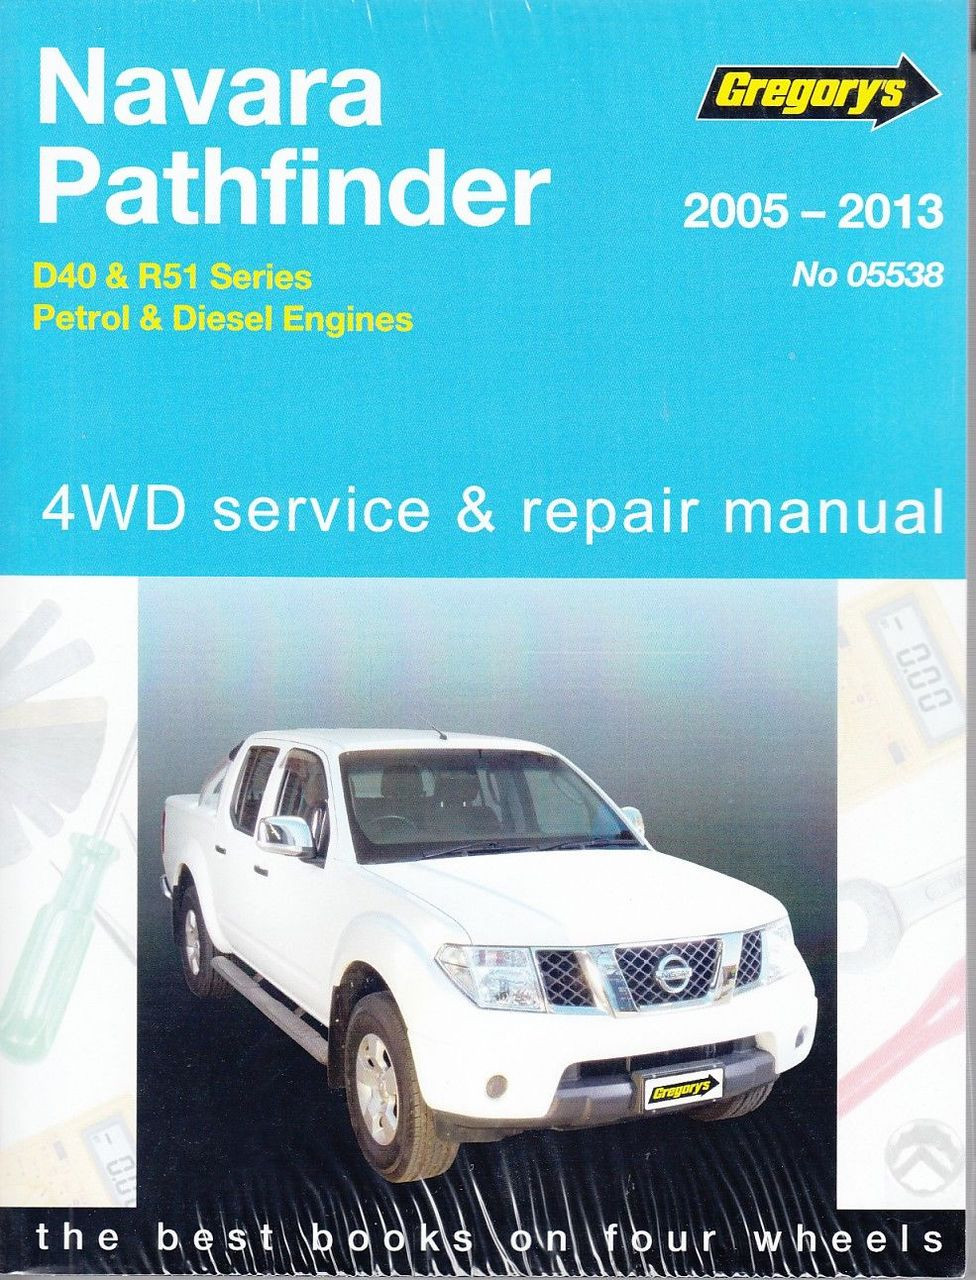 nissan navara pathfinder d40 r51 petrol diesel 2005 2013 rh automotobookshop com au Haynes Titanic Workshop Manual Cougar Workshop Manual